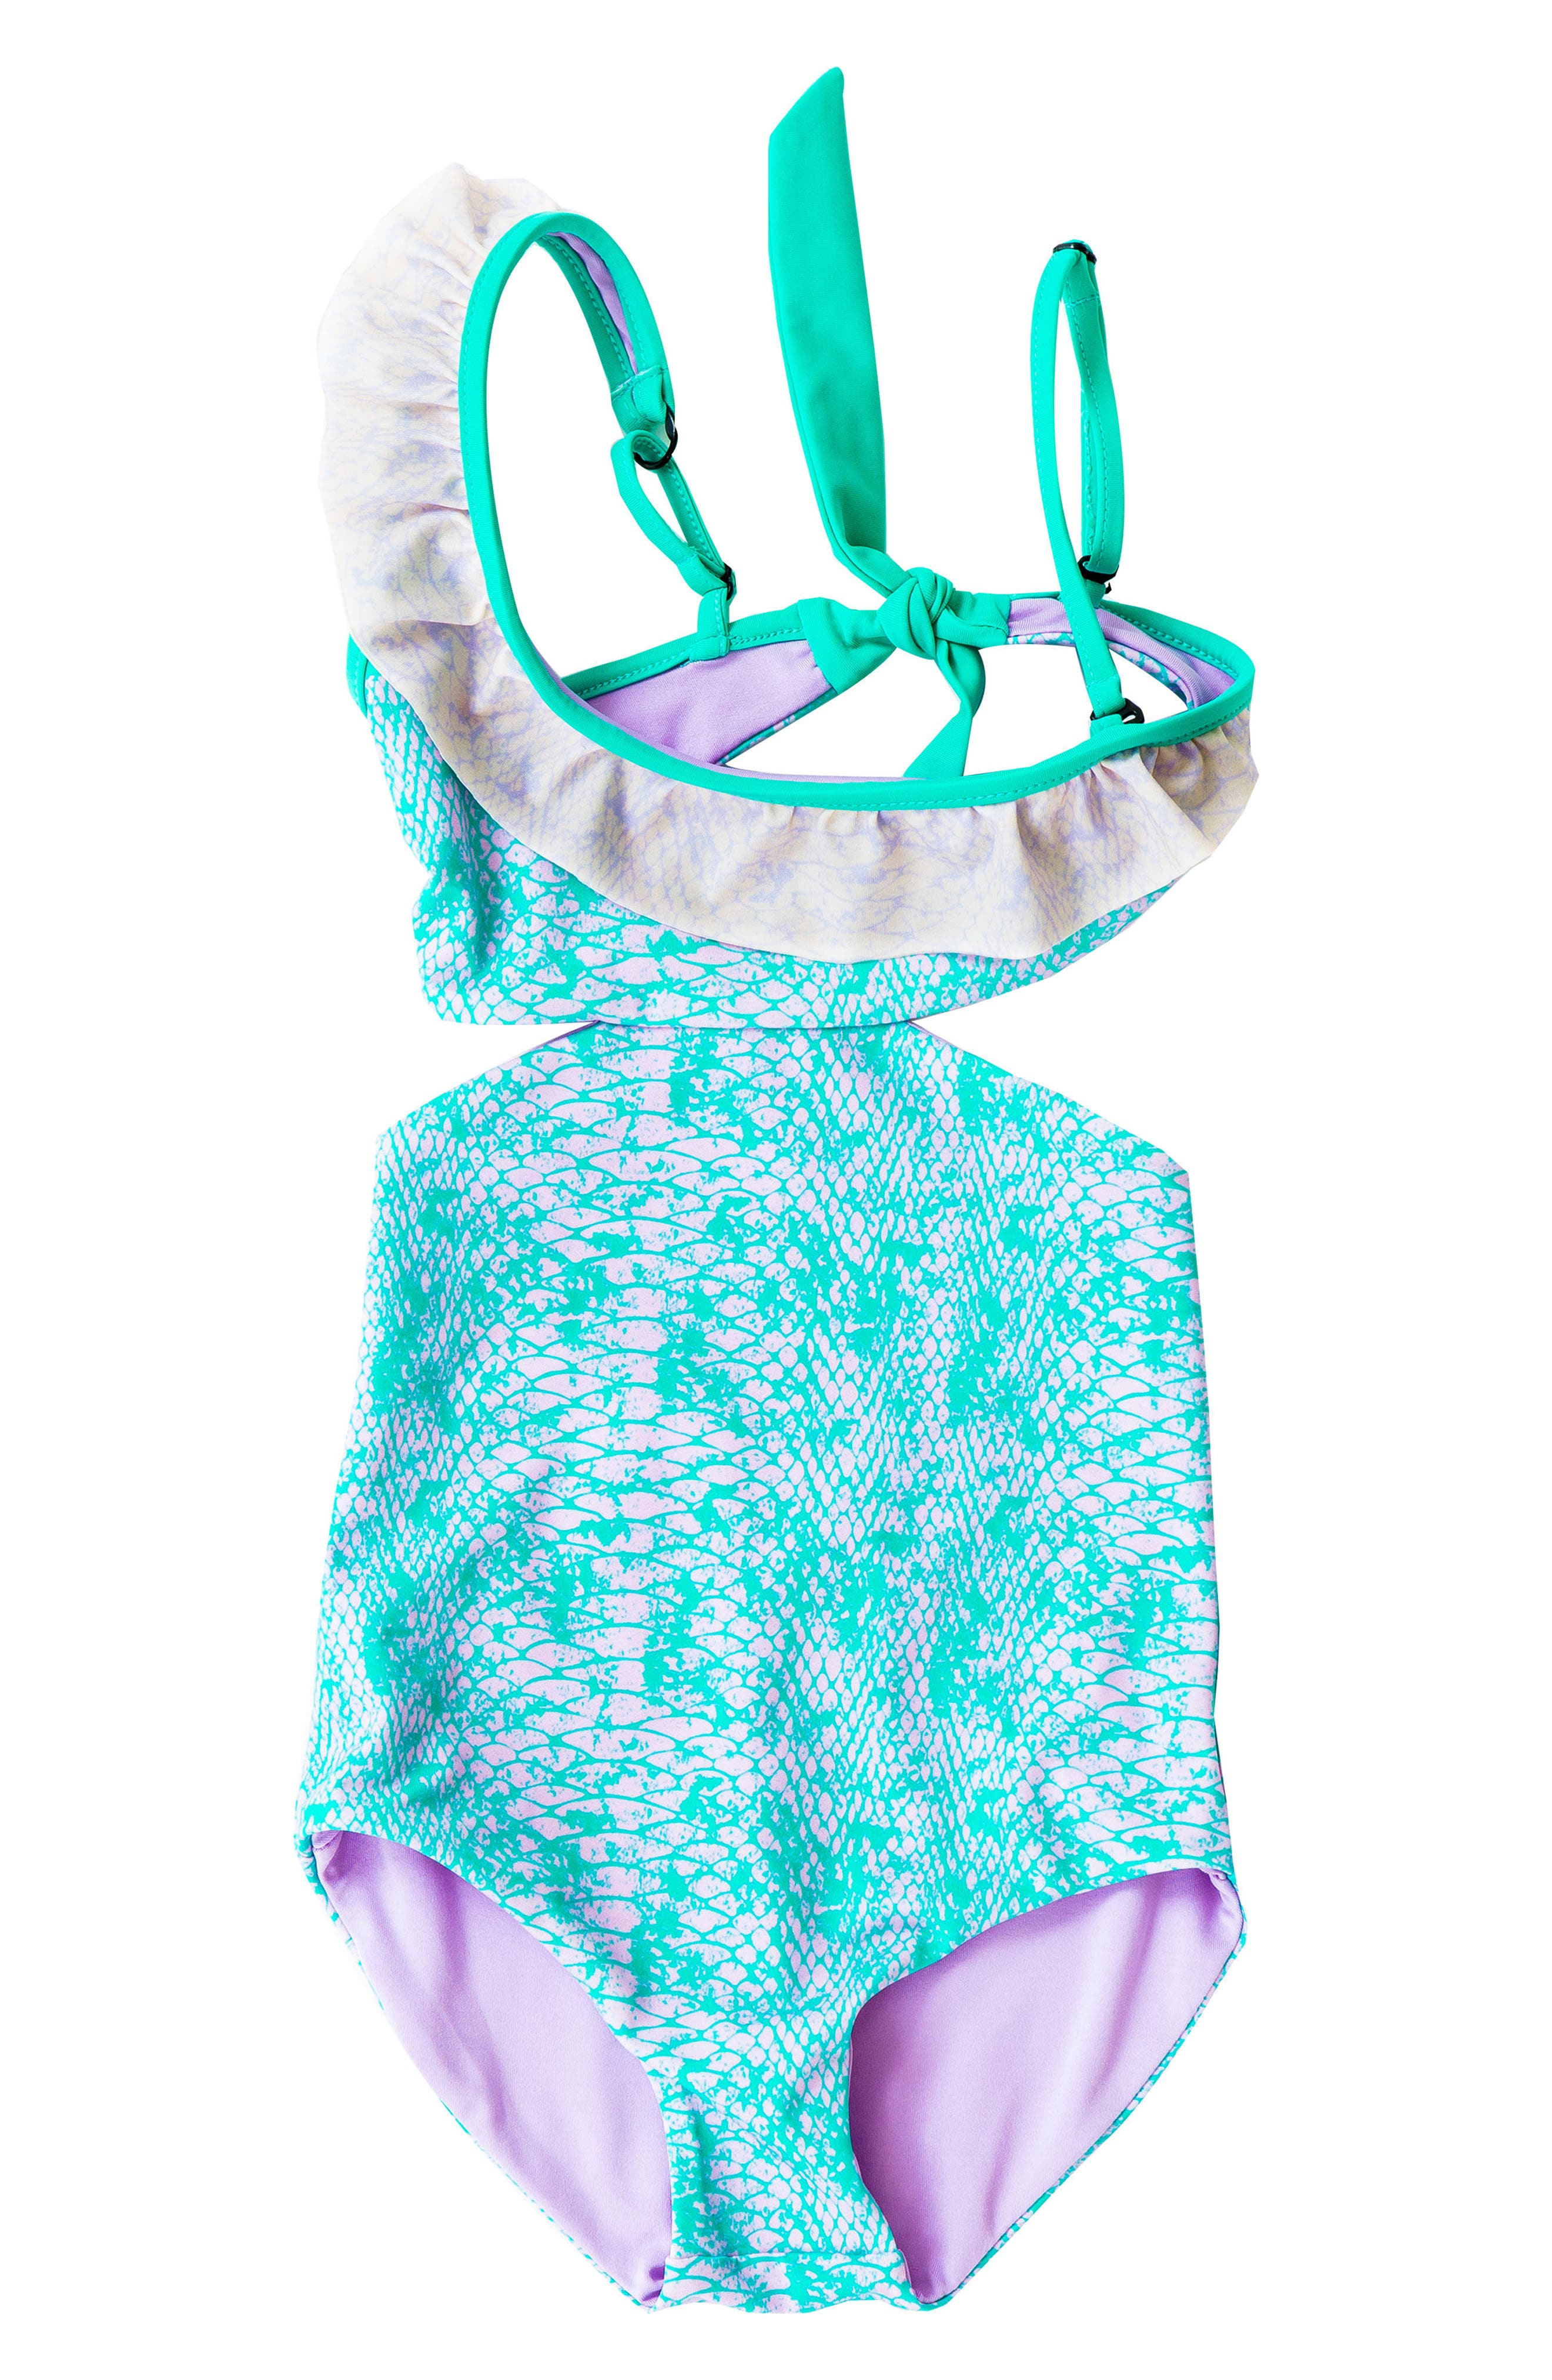 Main Image - BOWIE X JAMES Cococolada One-Piece Cutout Swimsuit (Toddler Girls, Little Girls & Big Girls)